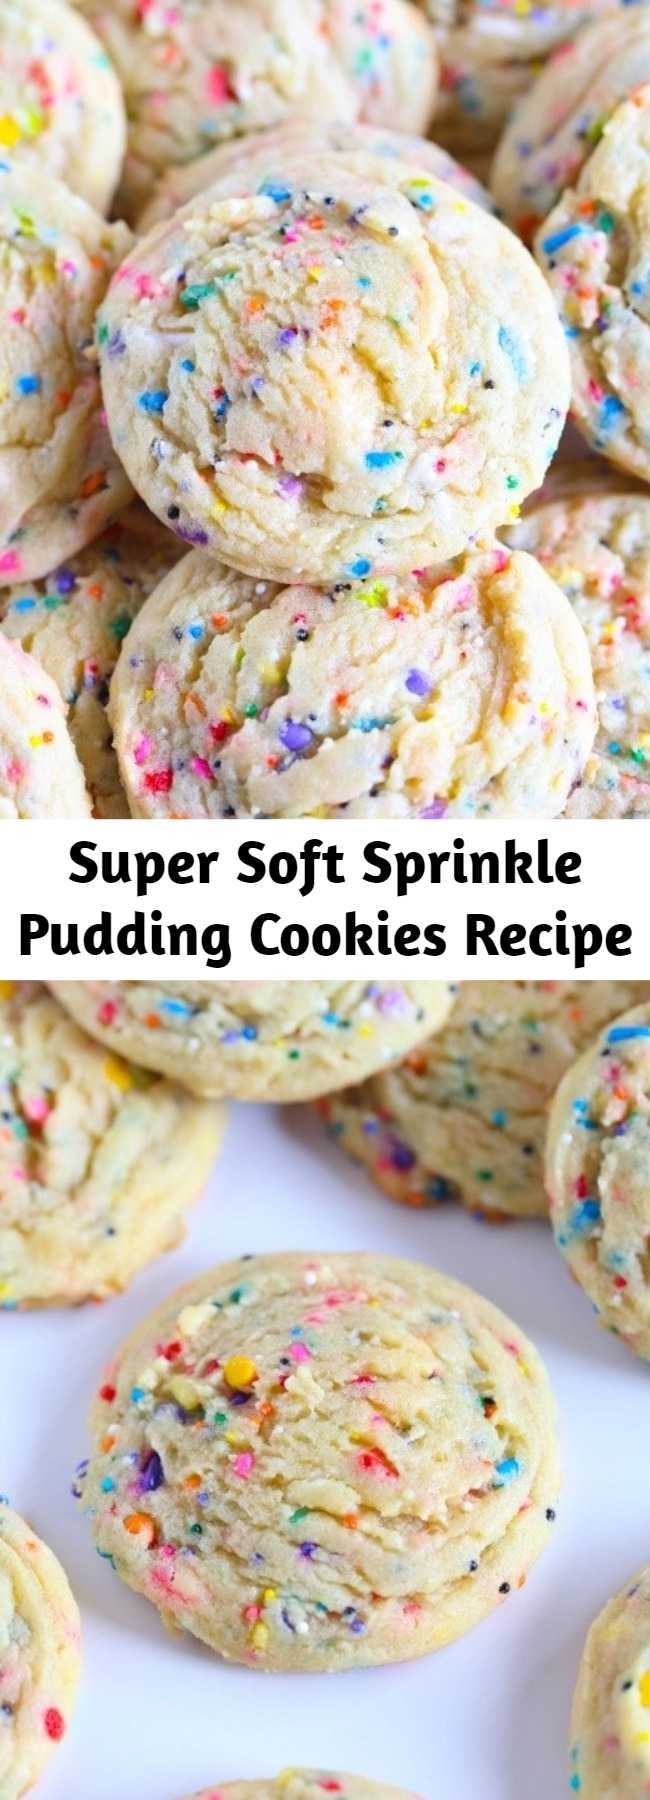 Super Soft Sprinkle Pudding Cookies Recipe - These soft sprinkle sugar cookies are made with a pudding mix! These SUPER SOFT Sprinkle Pudding cookies are so so easy and loaded with vanilla flavor! This is the best sprinkle cookie recipe to make because it's so easy, buttery, and delicious!